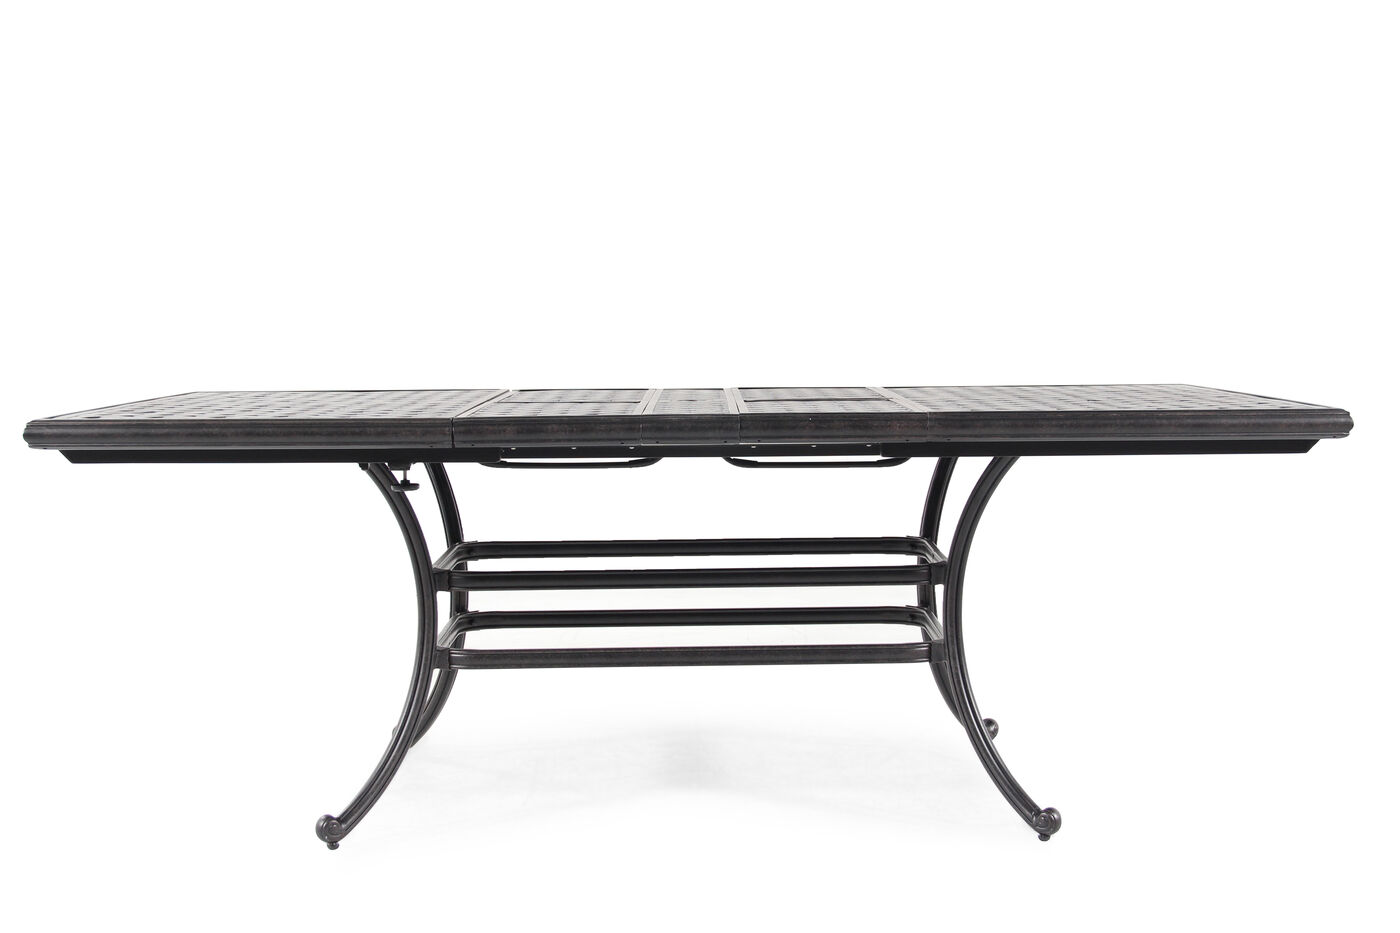 Mathis Brothers Patio Furniture world source patio dining table | mathis brothers furniture